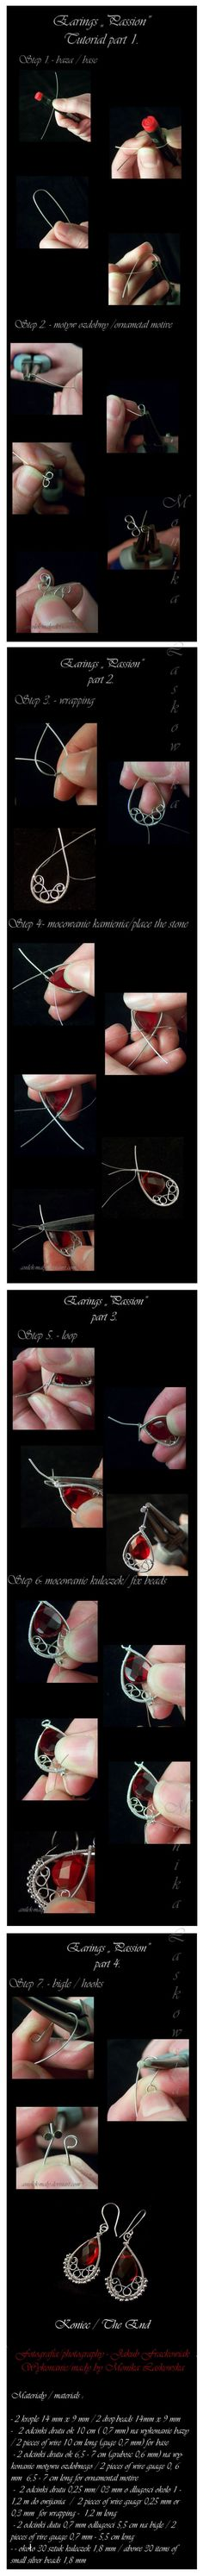 Wire wrapping tutorial via aniolek-maly.deviantart.com